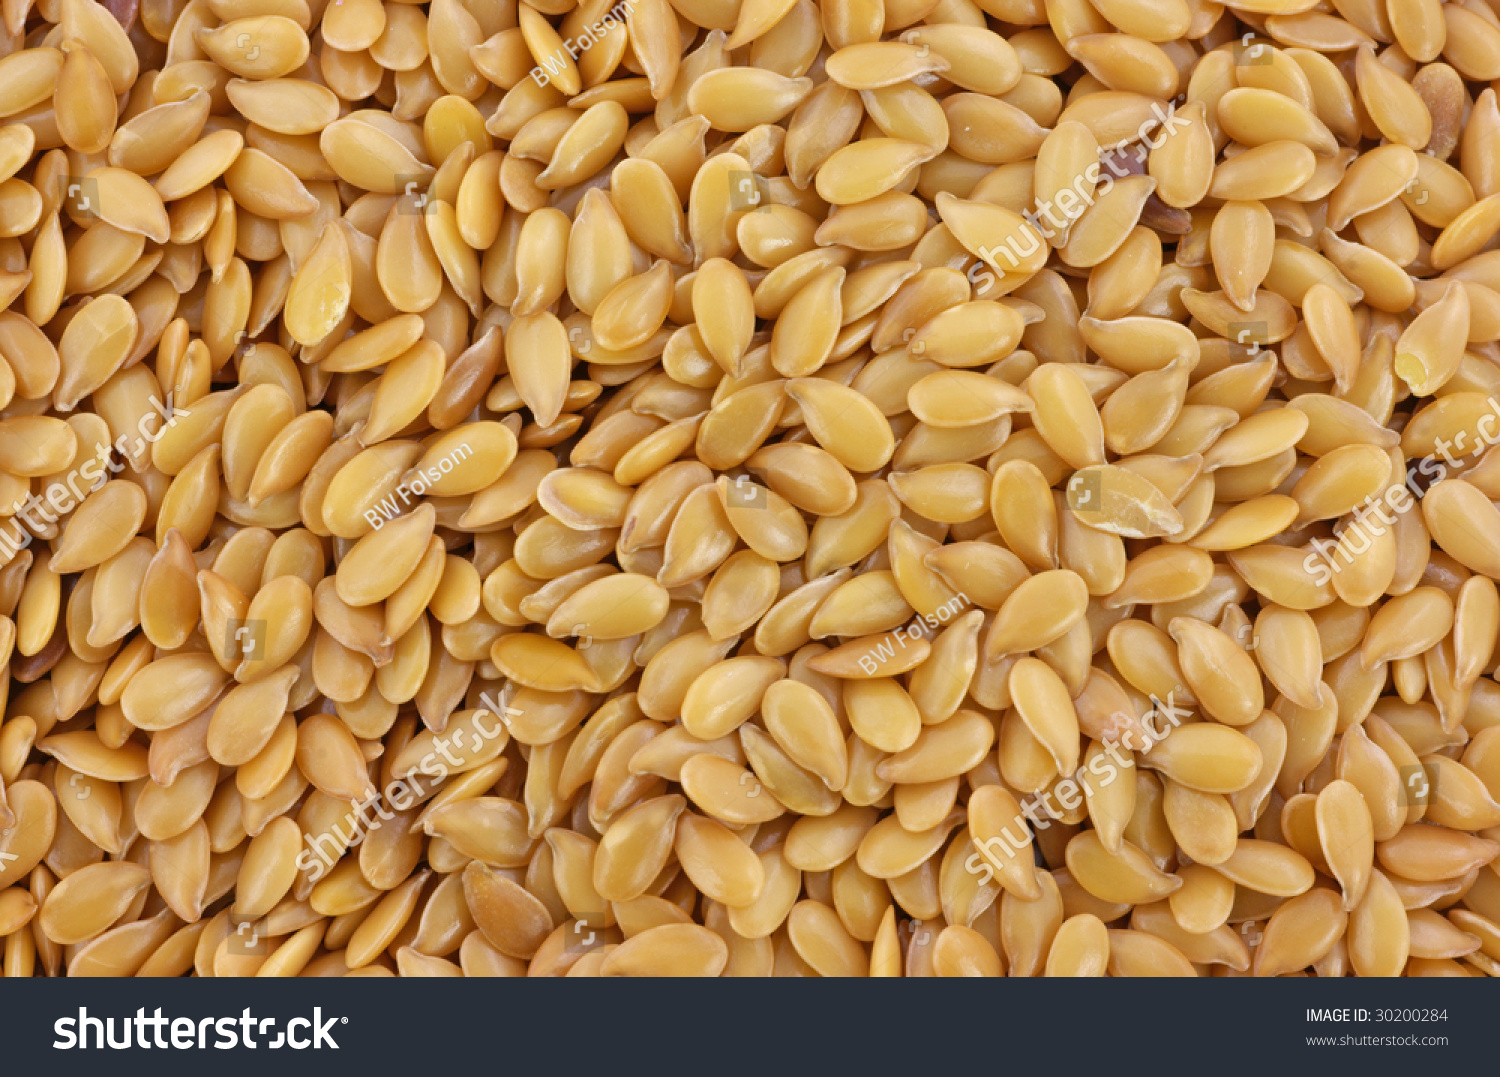 Macro view of organic golden flax seeds #30200284